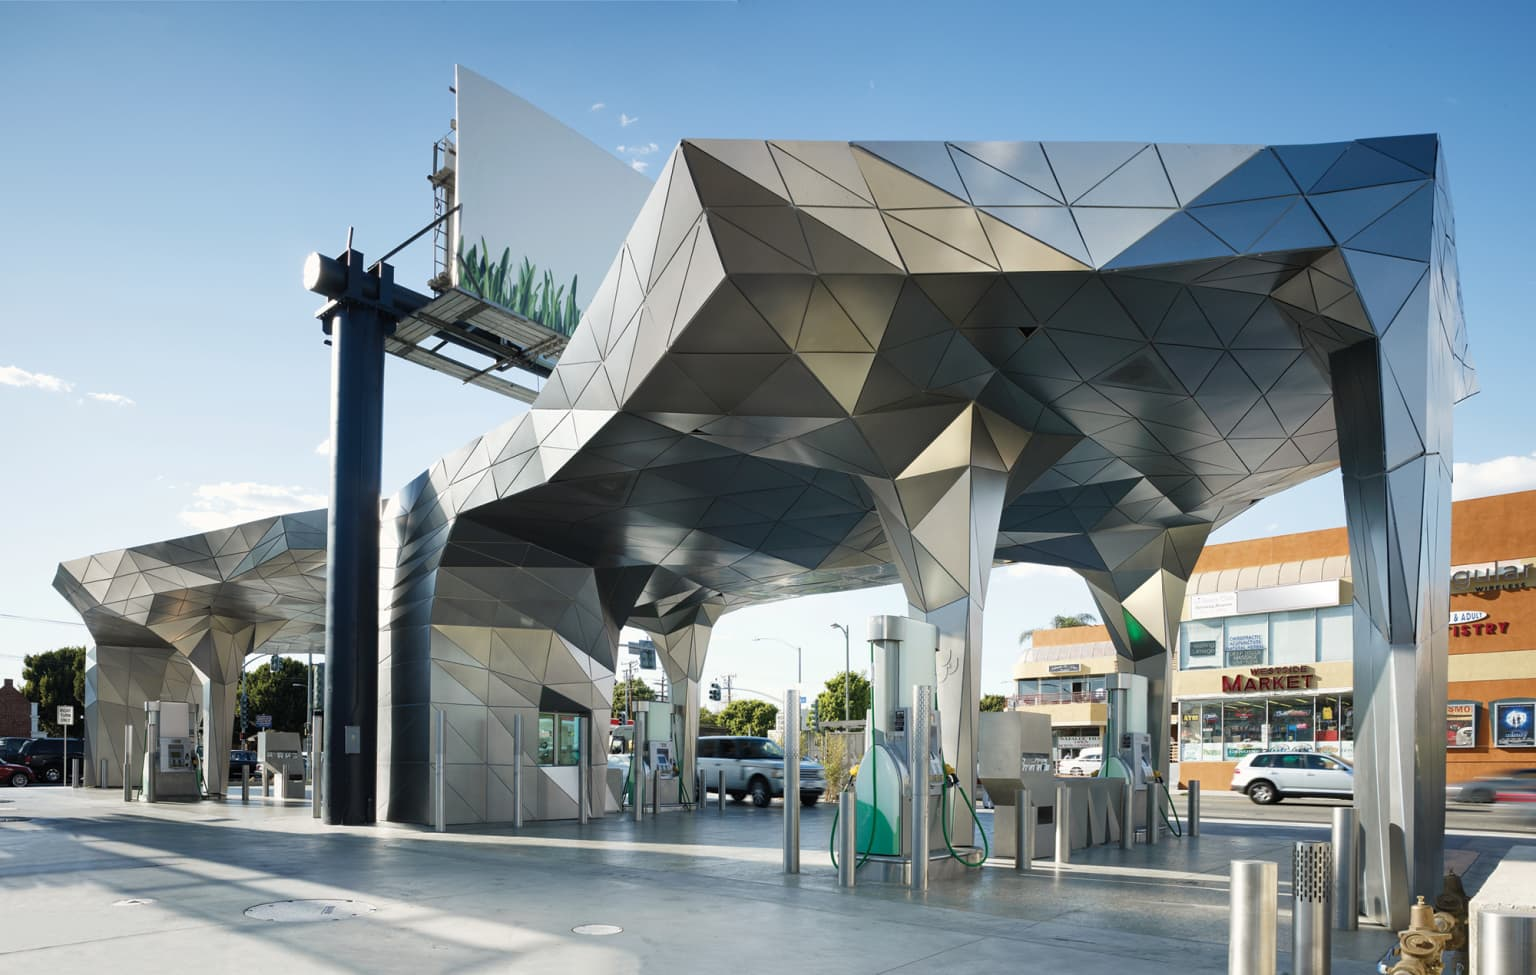 A living lab for sustainable design and building practices (at a gas station)